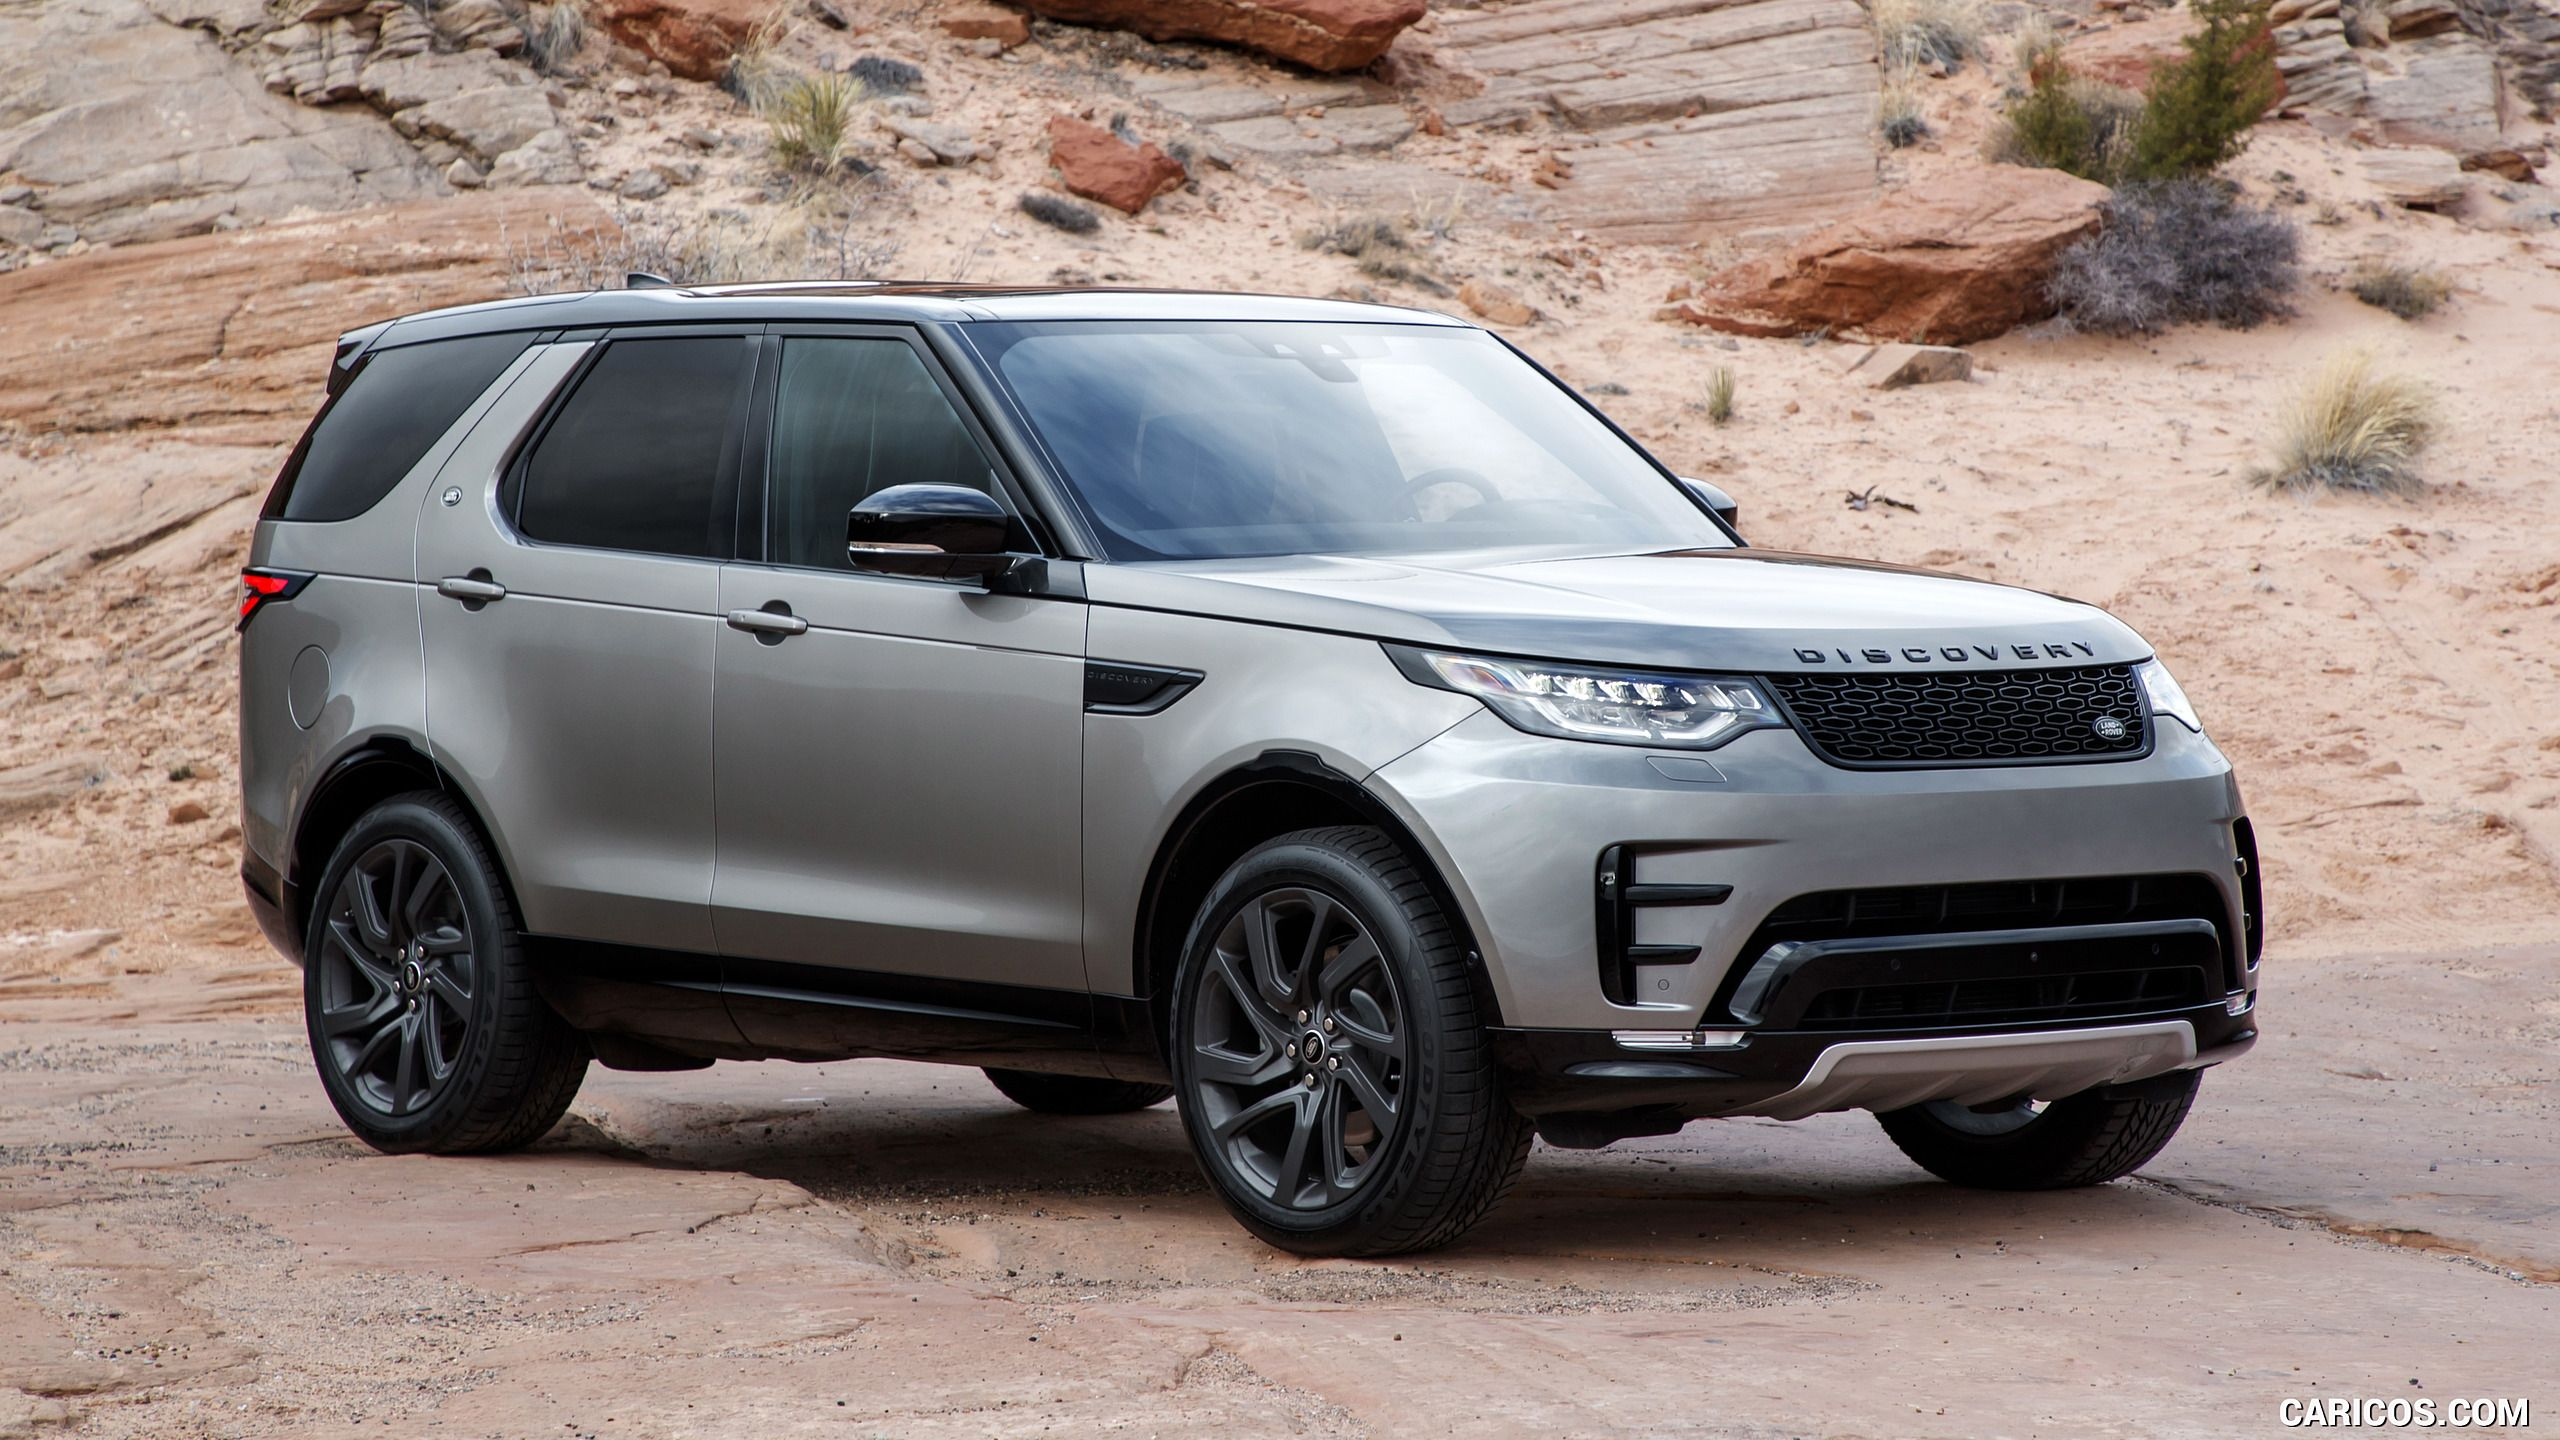 2018 Land Rover Discovery Hse Si6 Color Silicon Silver Us Spec